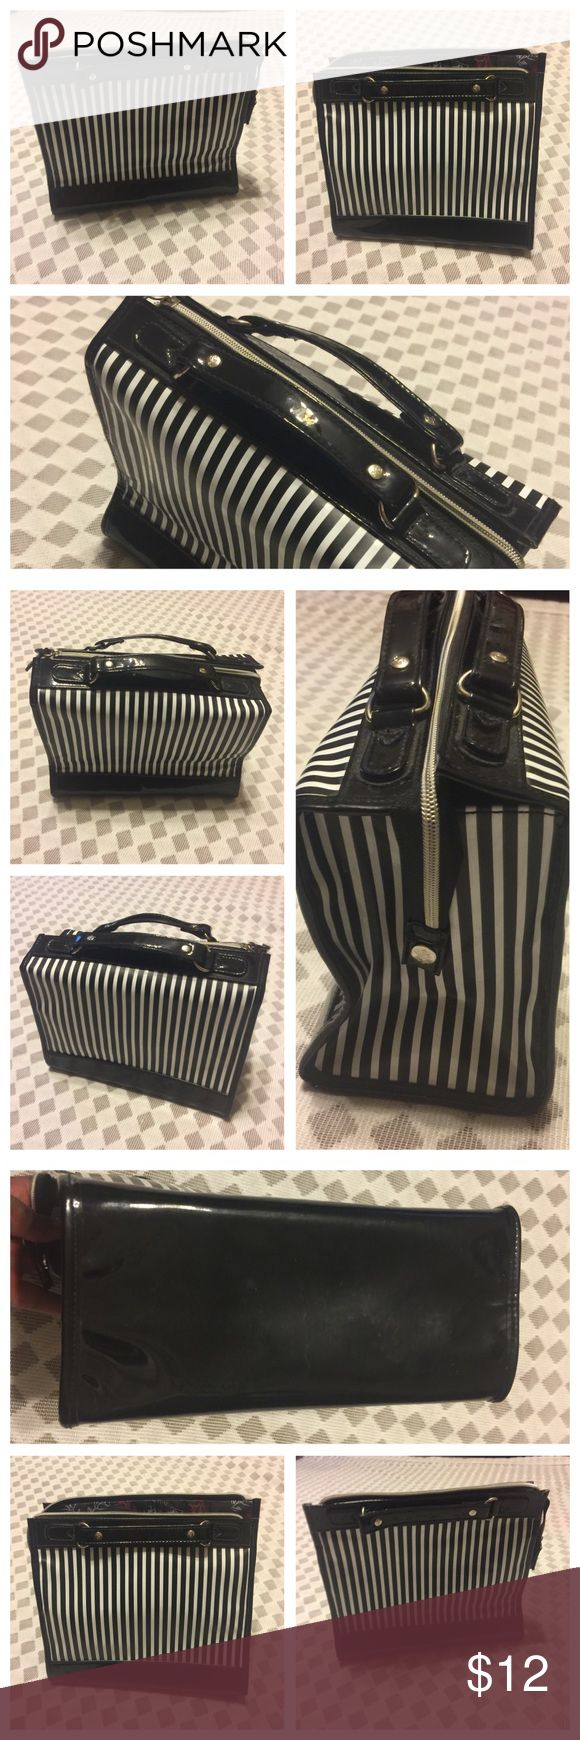 Lancôme Signature Travel Cosmetic Bag Lancôme Signature Travel Cosmetic Bag. Black and White color. Has 2 inside wall elastic pockets. See photos attached for measurements. Preowned but Very clean inside and out. No hold, no trade, and no modeling. Lancome Bags Cosmetic Bags & Cases